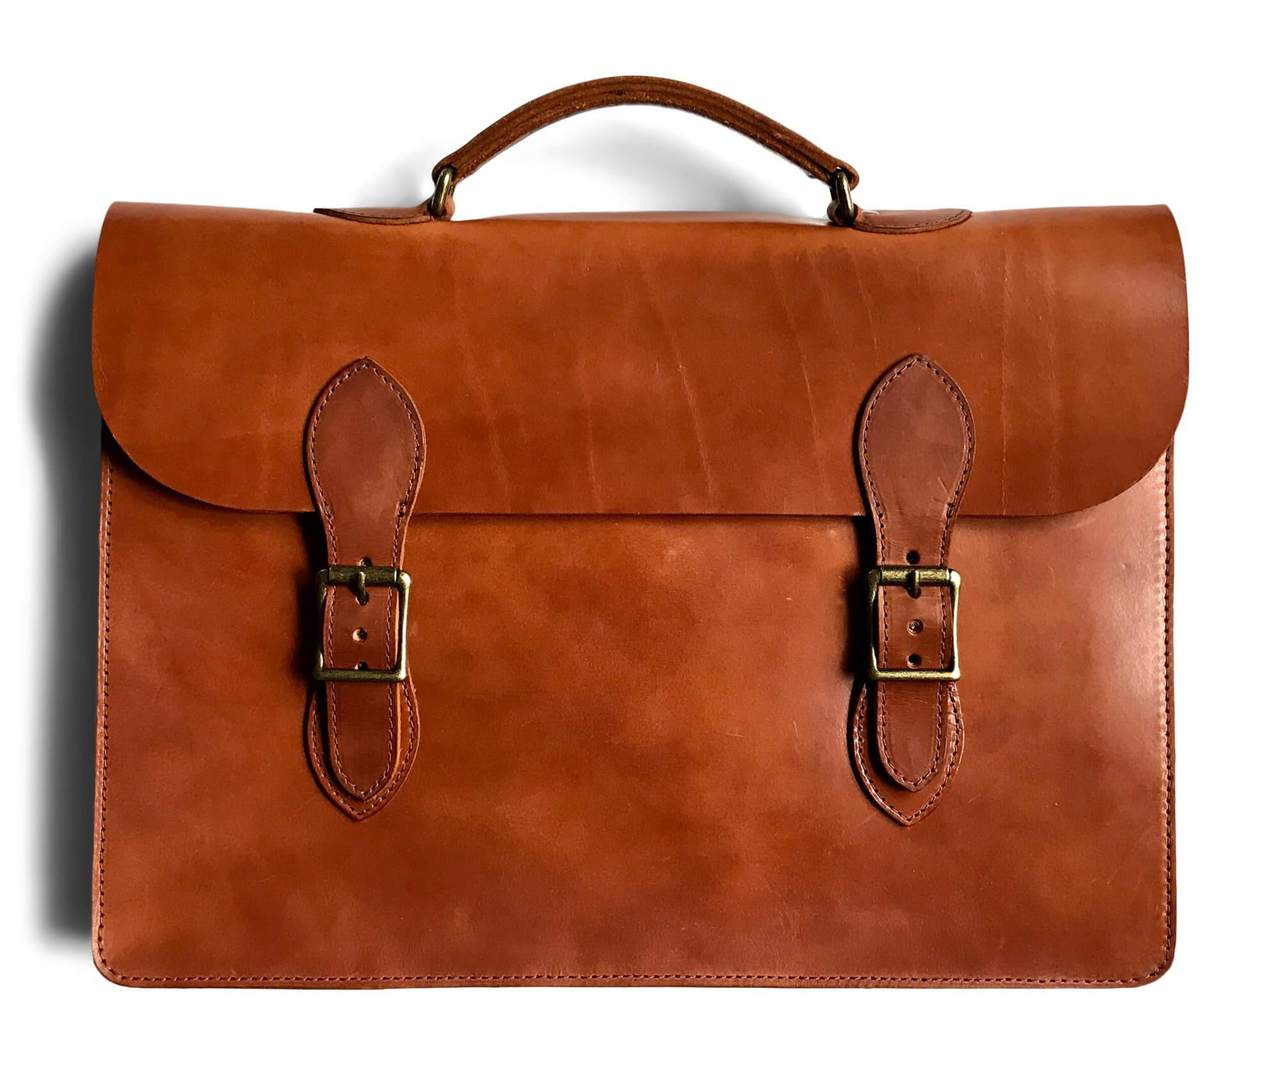 Jackson Wayne Leather Laptop Bag